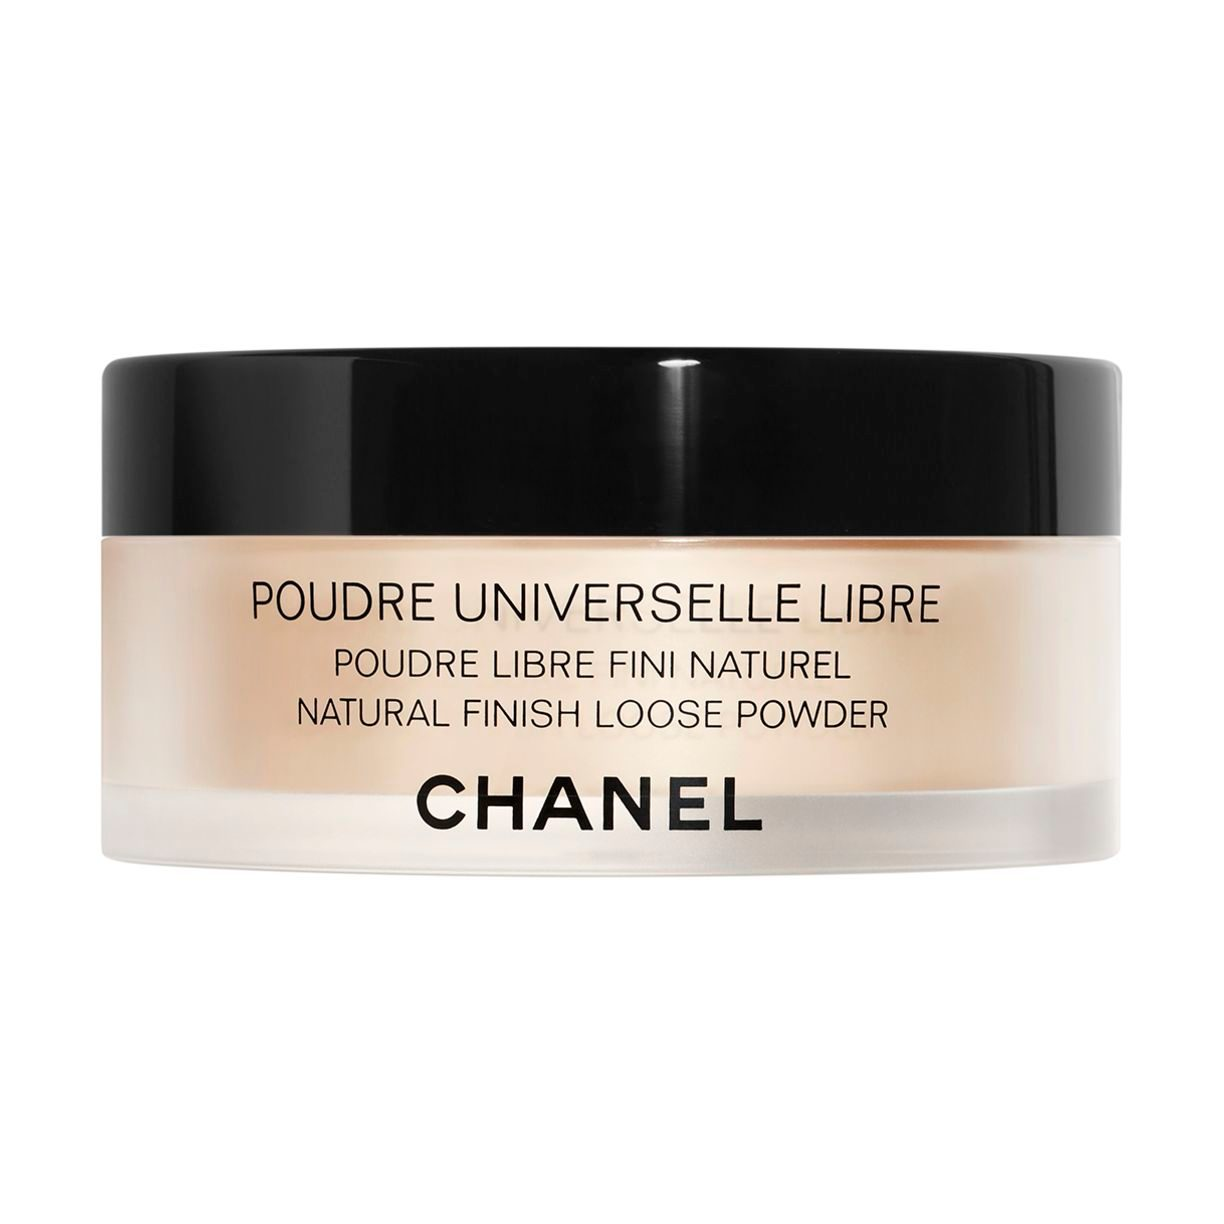 POUDRE UNIVERSELLE LIBRE 輕盈完美蜜粉 30 - NATUREL - TRANSLUCENT 2